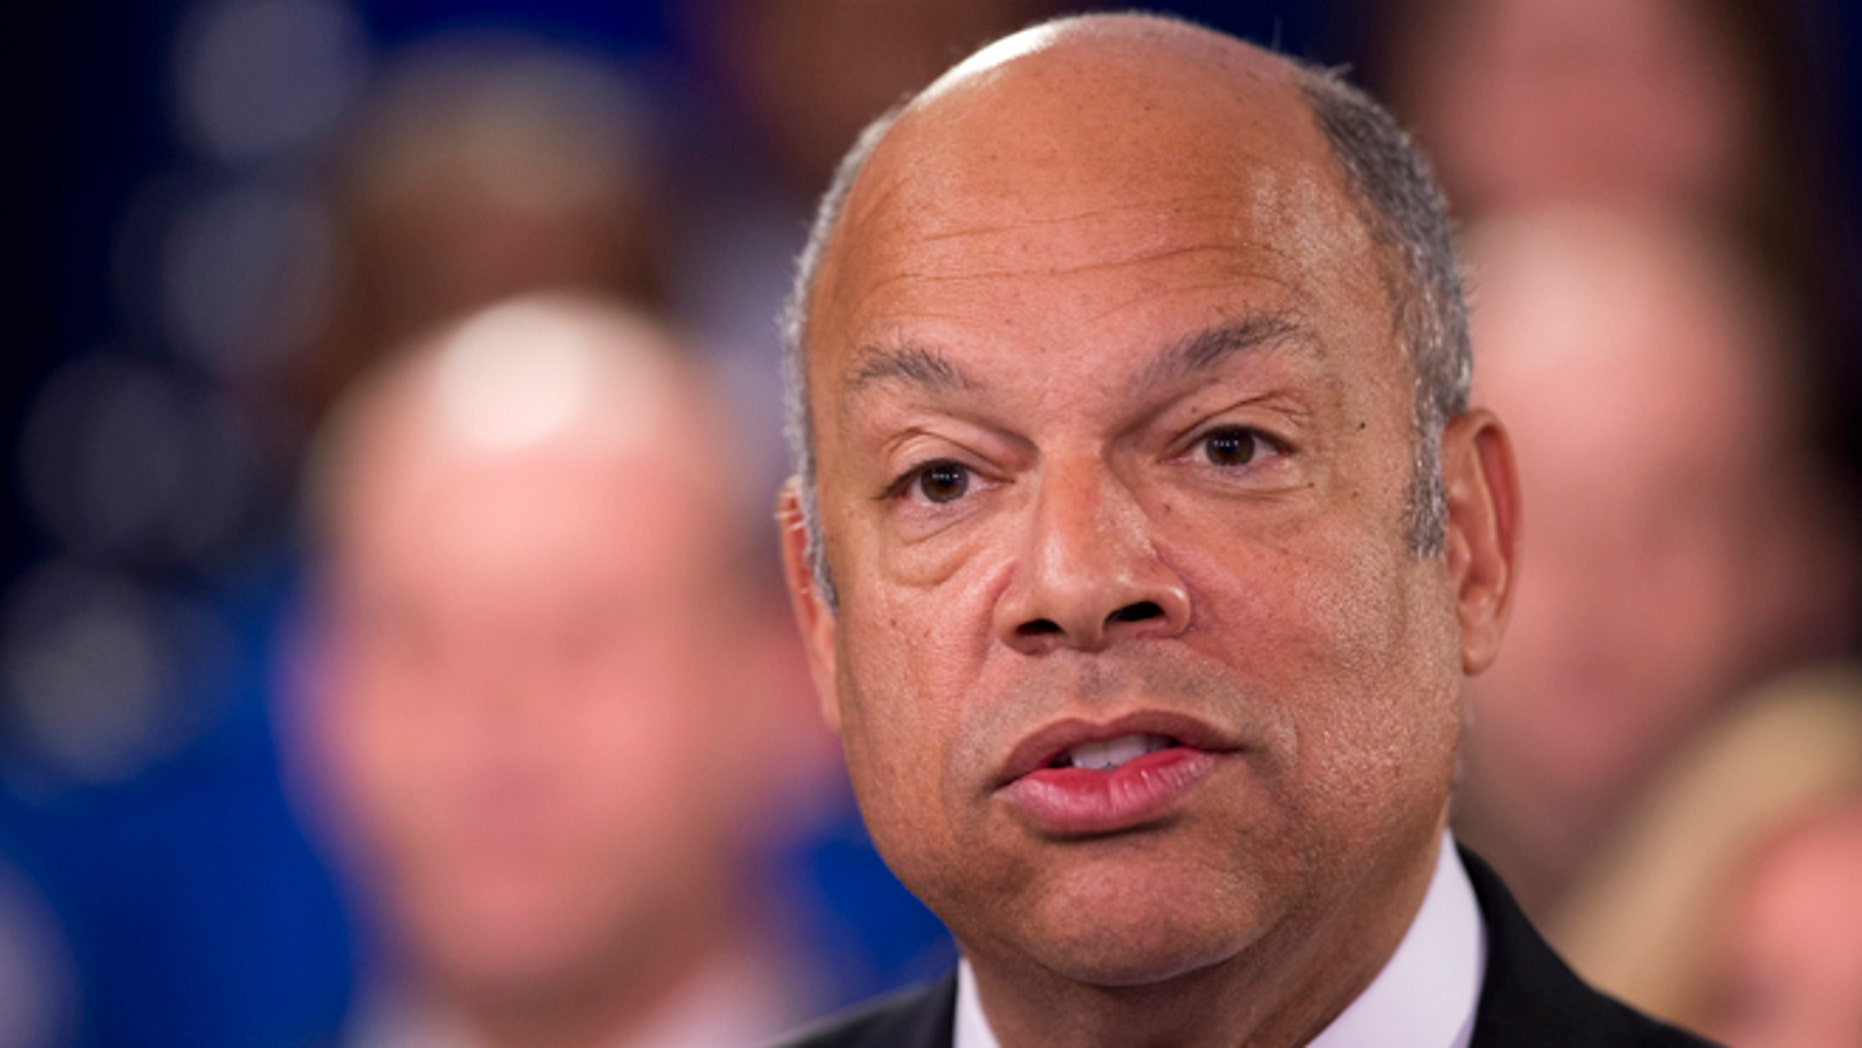 Homeland Security Secretary Jeh Johnson, joined by the department employees, during a news conference in Washington, Monday, Feb. 23, 2015. A partial shutdown of the Homeland Security Department loomed at weekâs end, but no solution was in sight as senators returned to the Capitol from a week-long recess Monday to confront an impasse over the issue.    (AP Photo/Manuel Balce Ceneta)